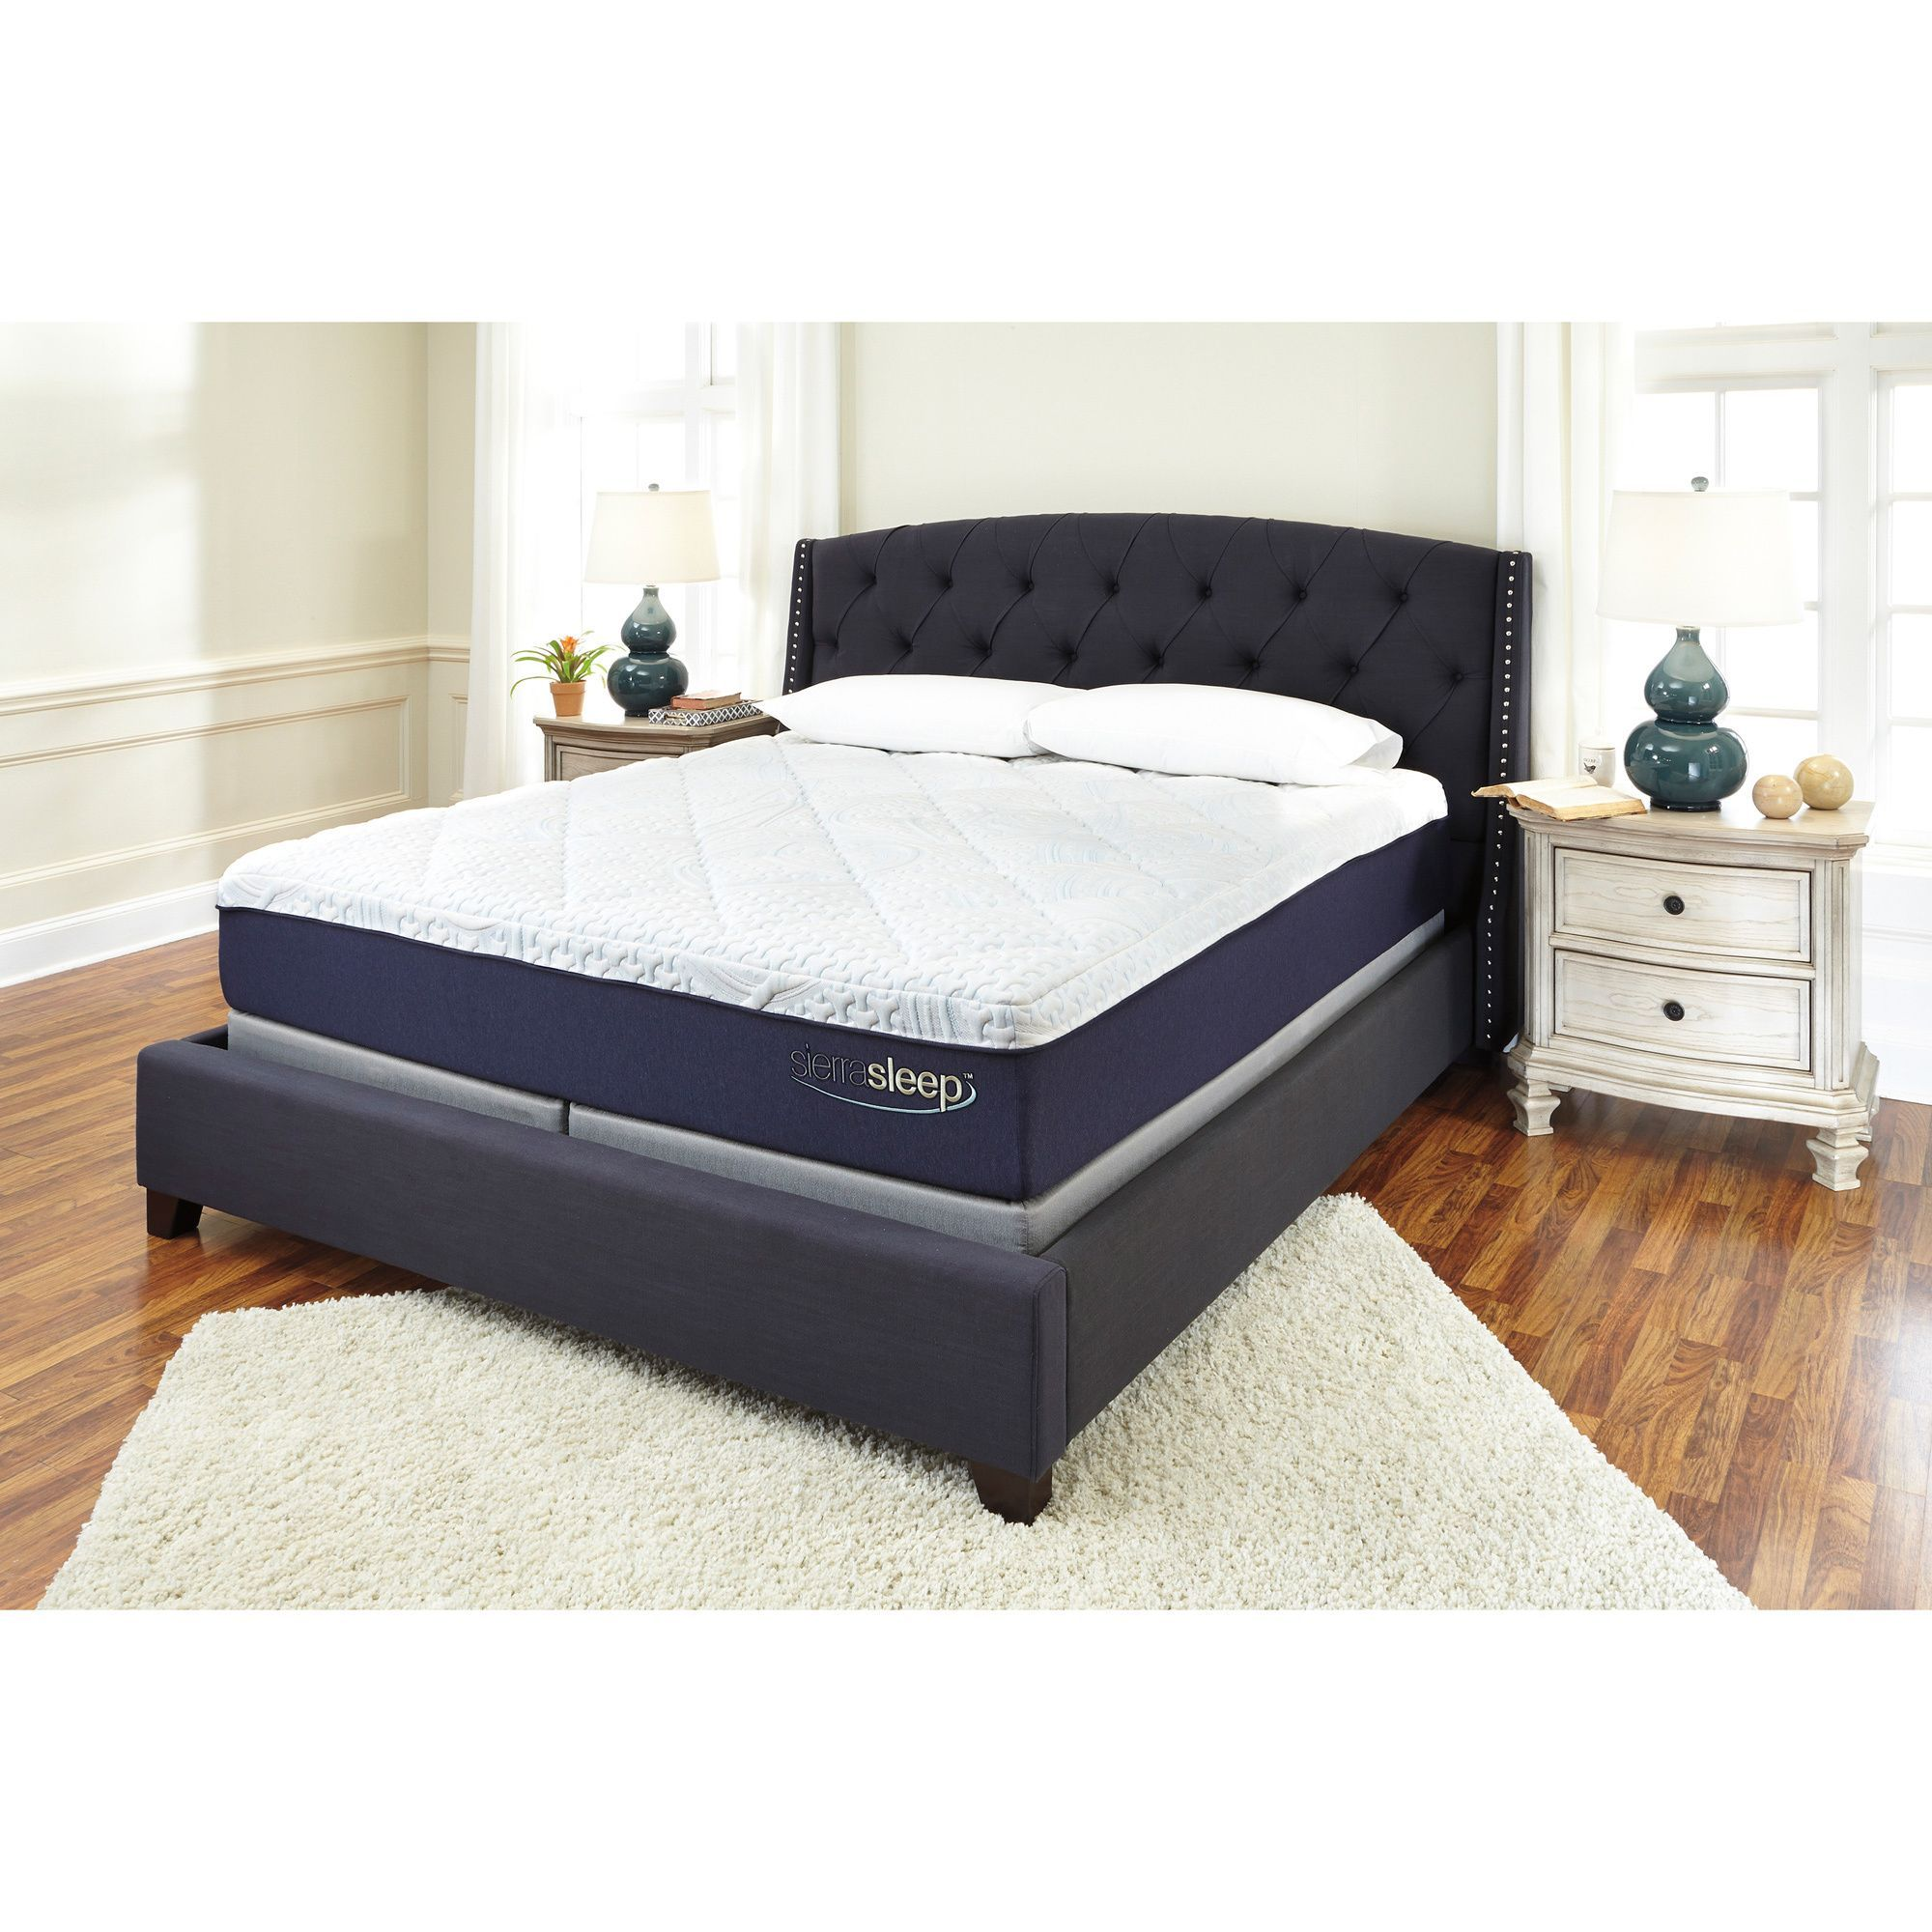 sierra sleep by ashley 13 inch queen size gel memory foam mattress